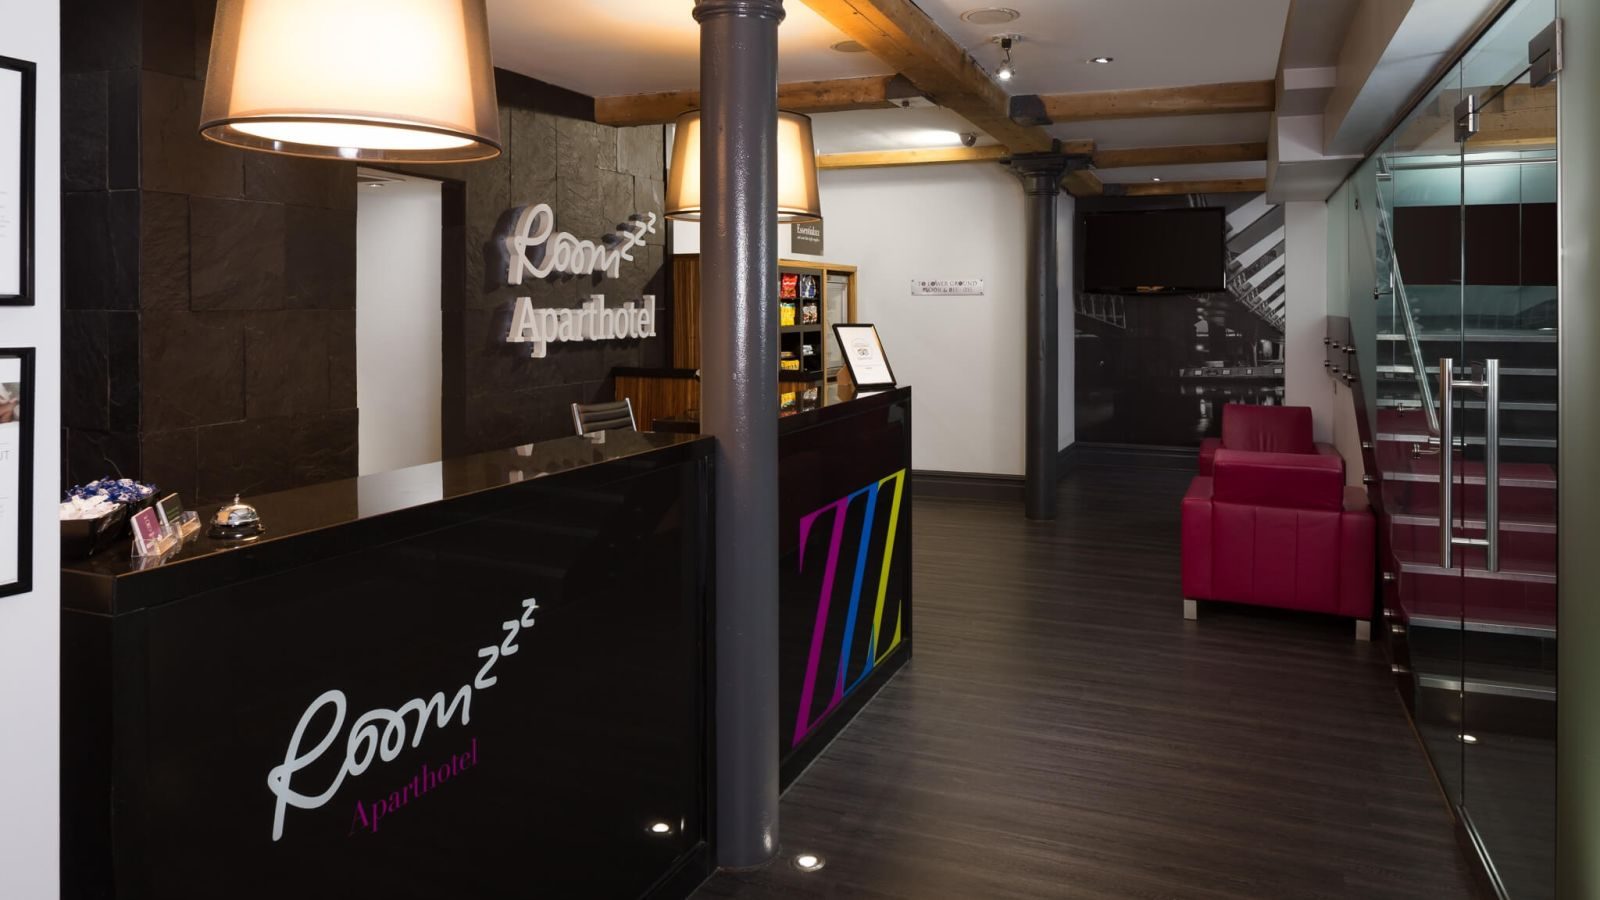 24 hour reception desk at IconInc @ Roomzzz Manchester City